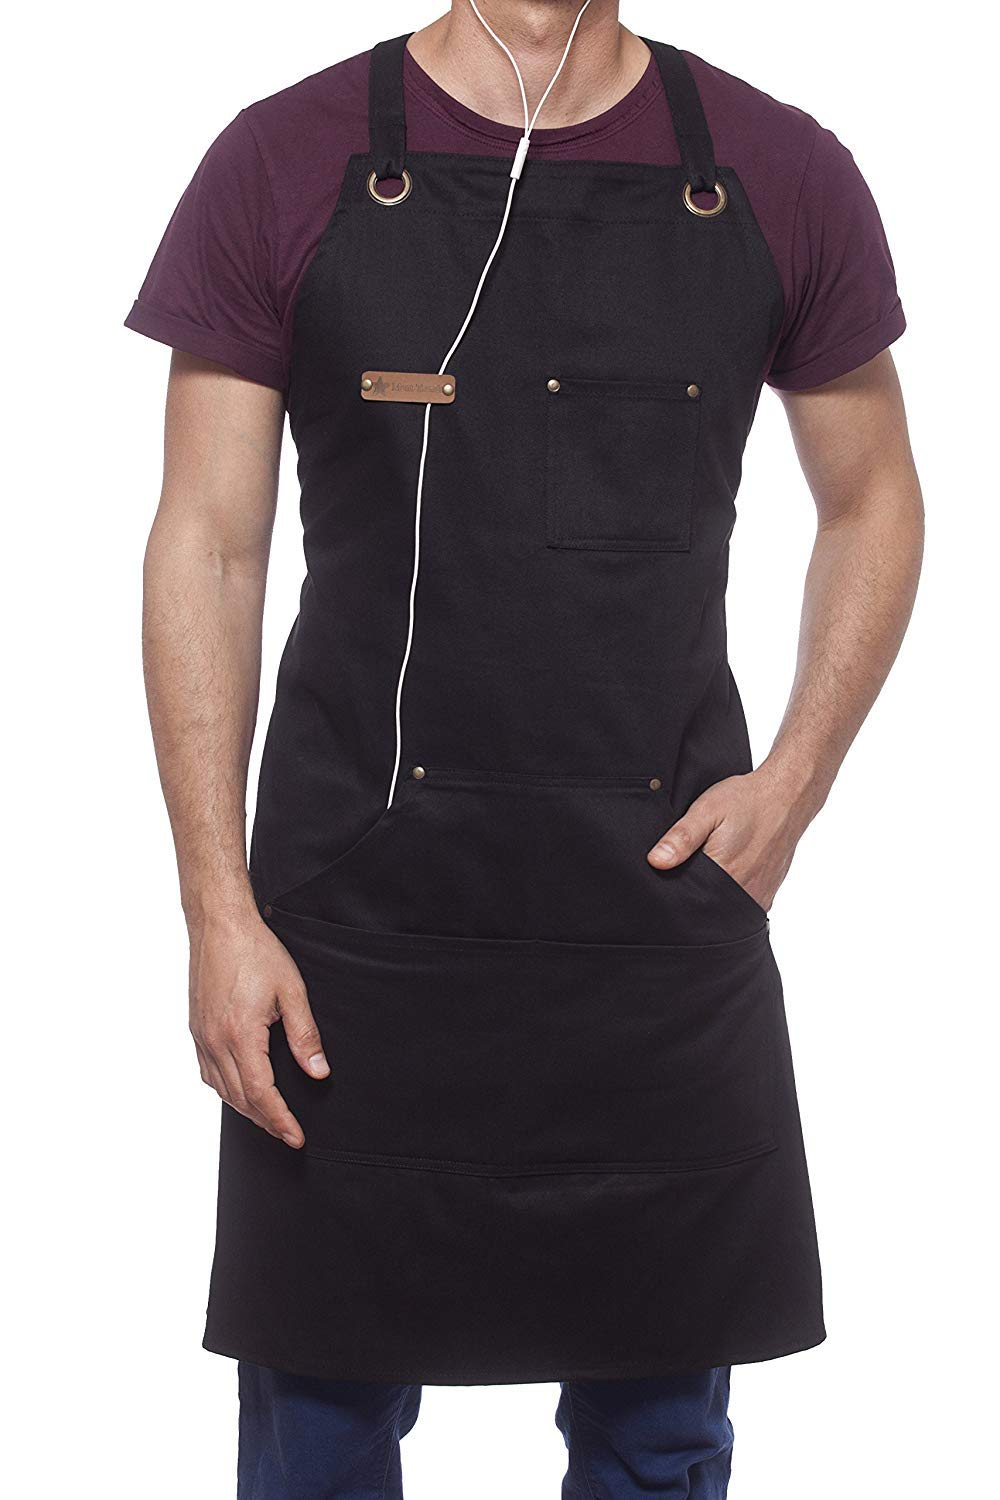 MENT Trends Professional Cooking Apron Chef Designed for Kitchen BBQ Grill / 10 OZ Black Cotton for Women and Men Bib Adjustable/Towel Loop + Quick Release Buckle + Tool Pockets + Headphones Loop